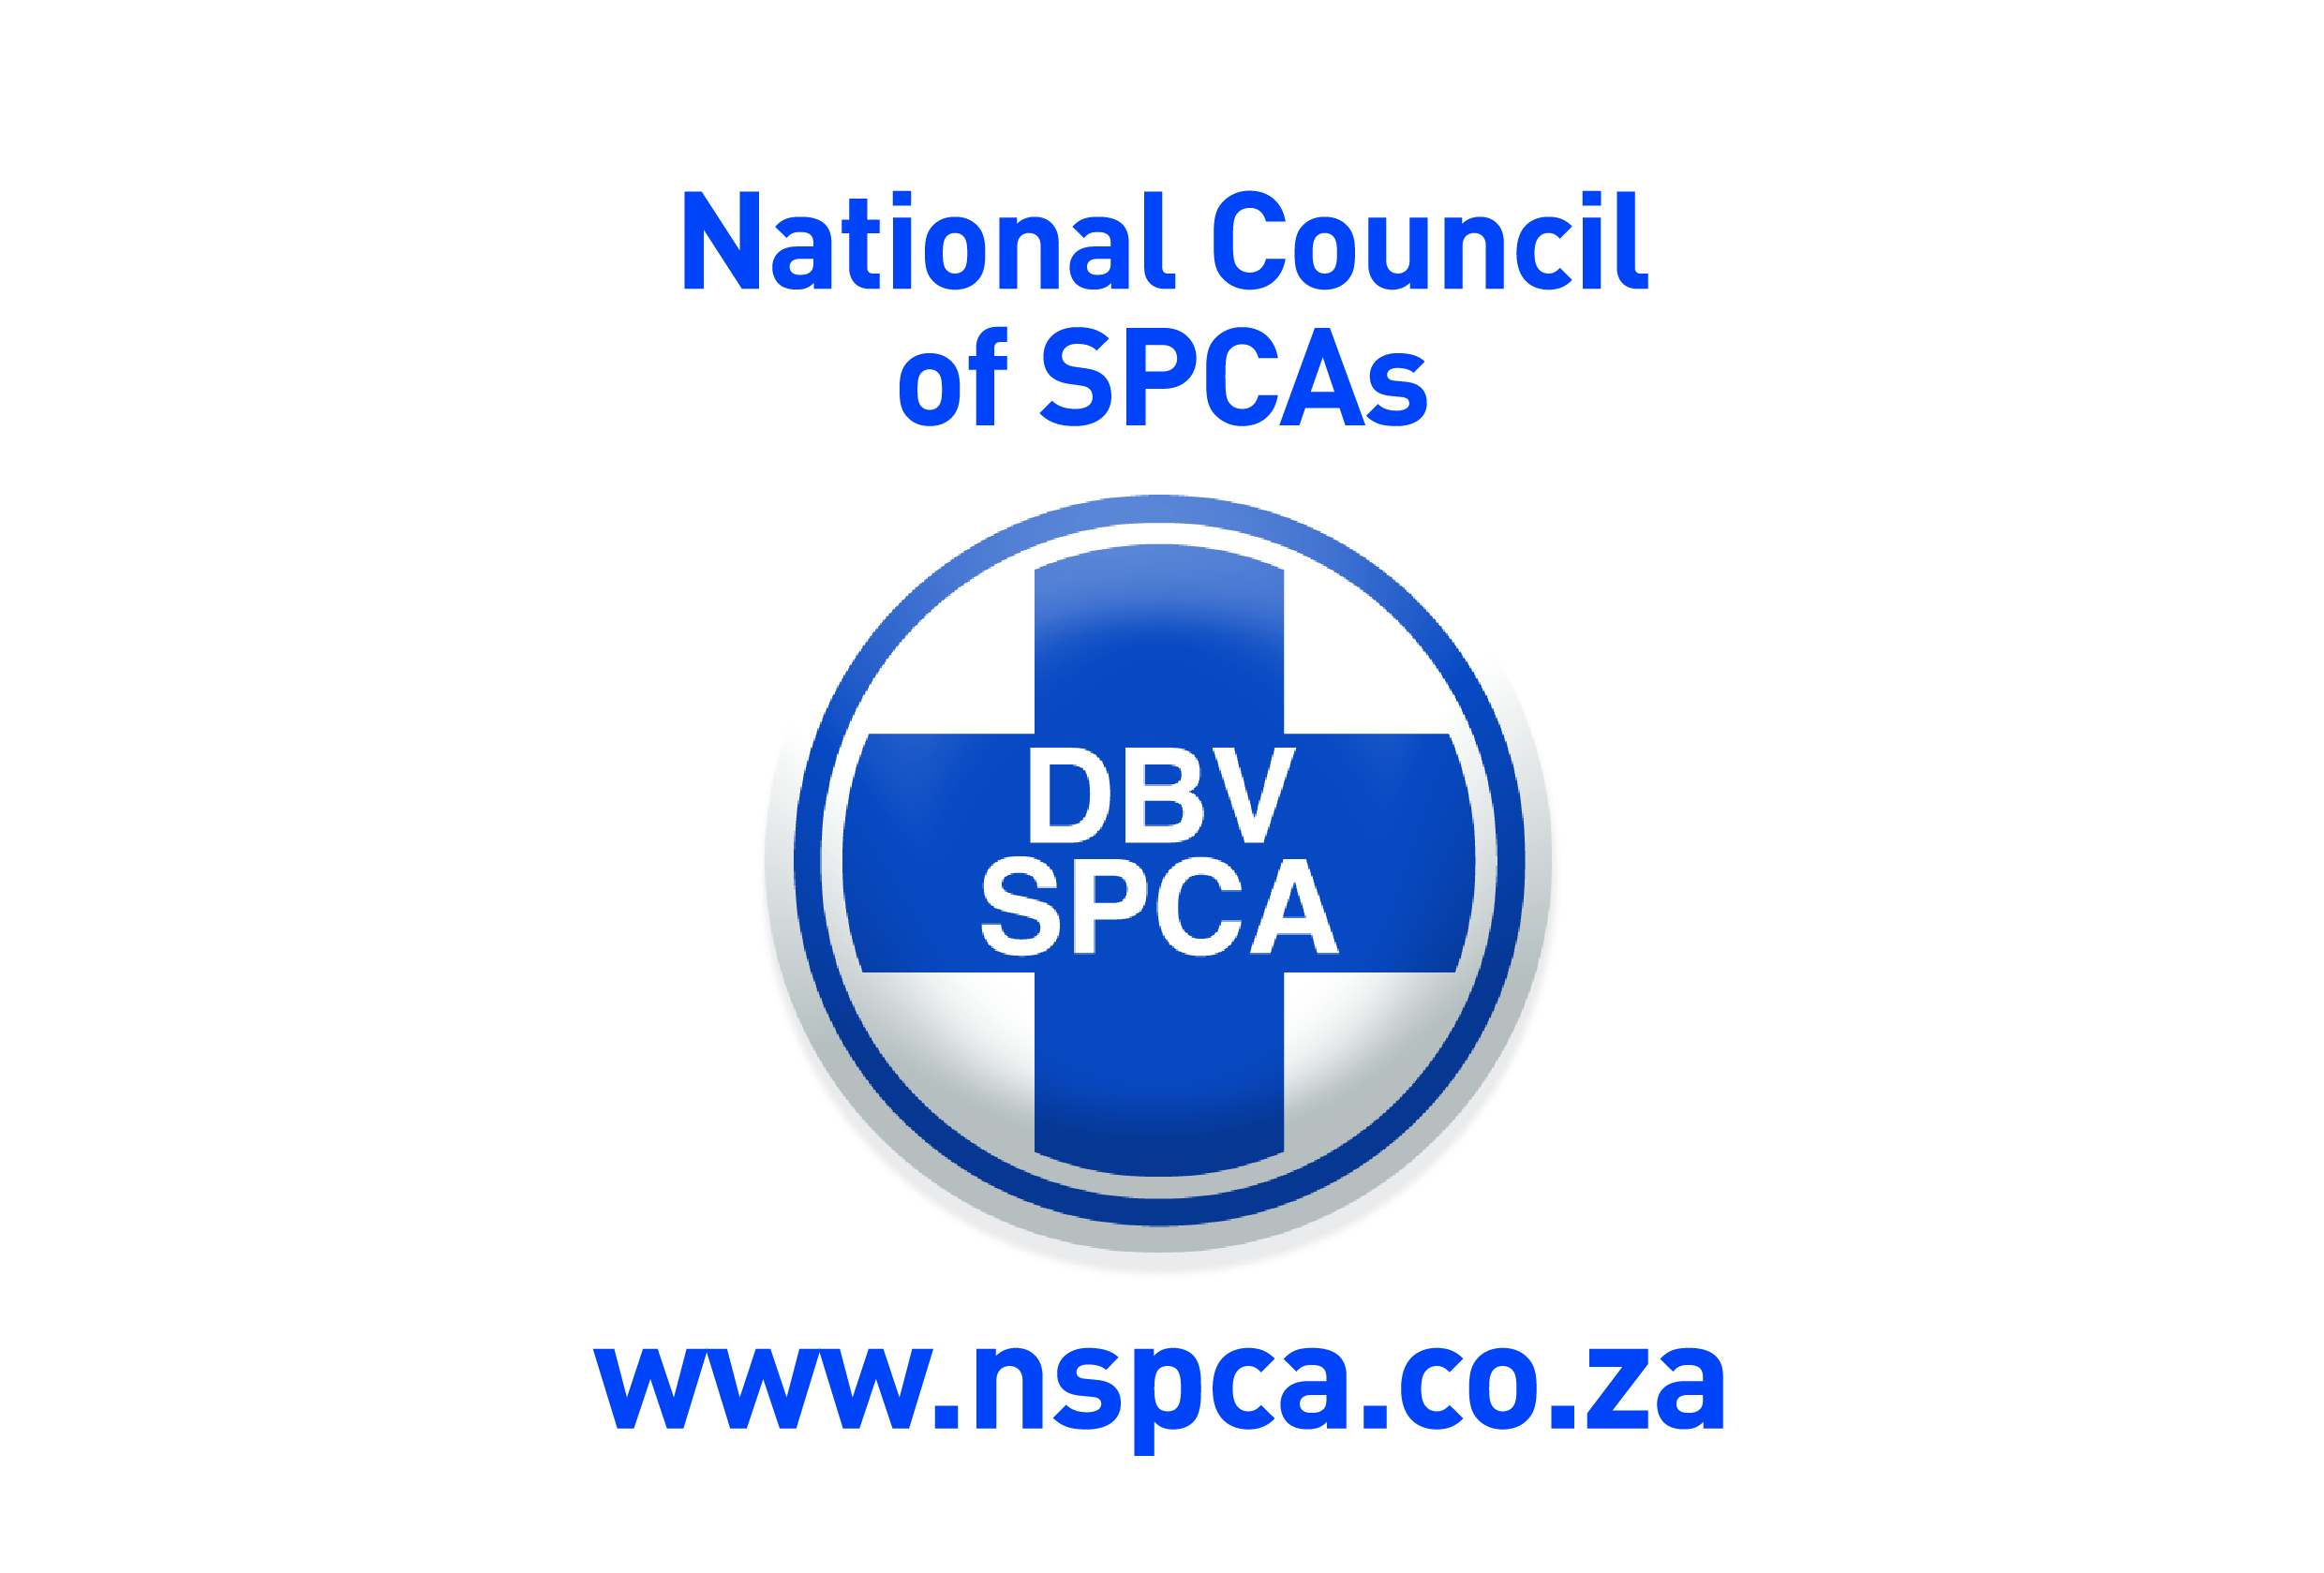 National Council of SPCA's Logo